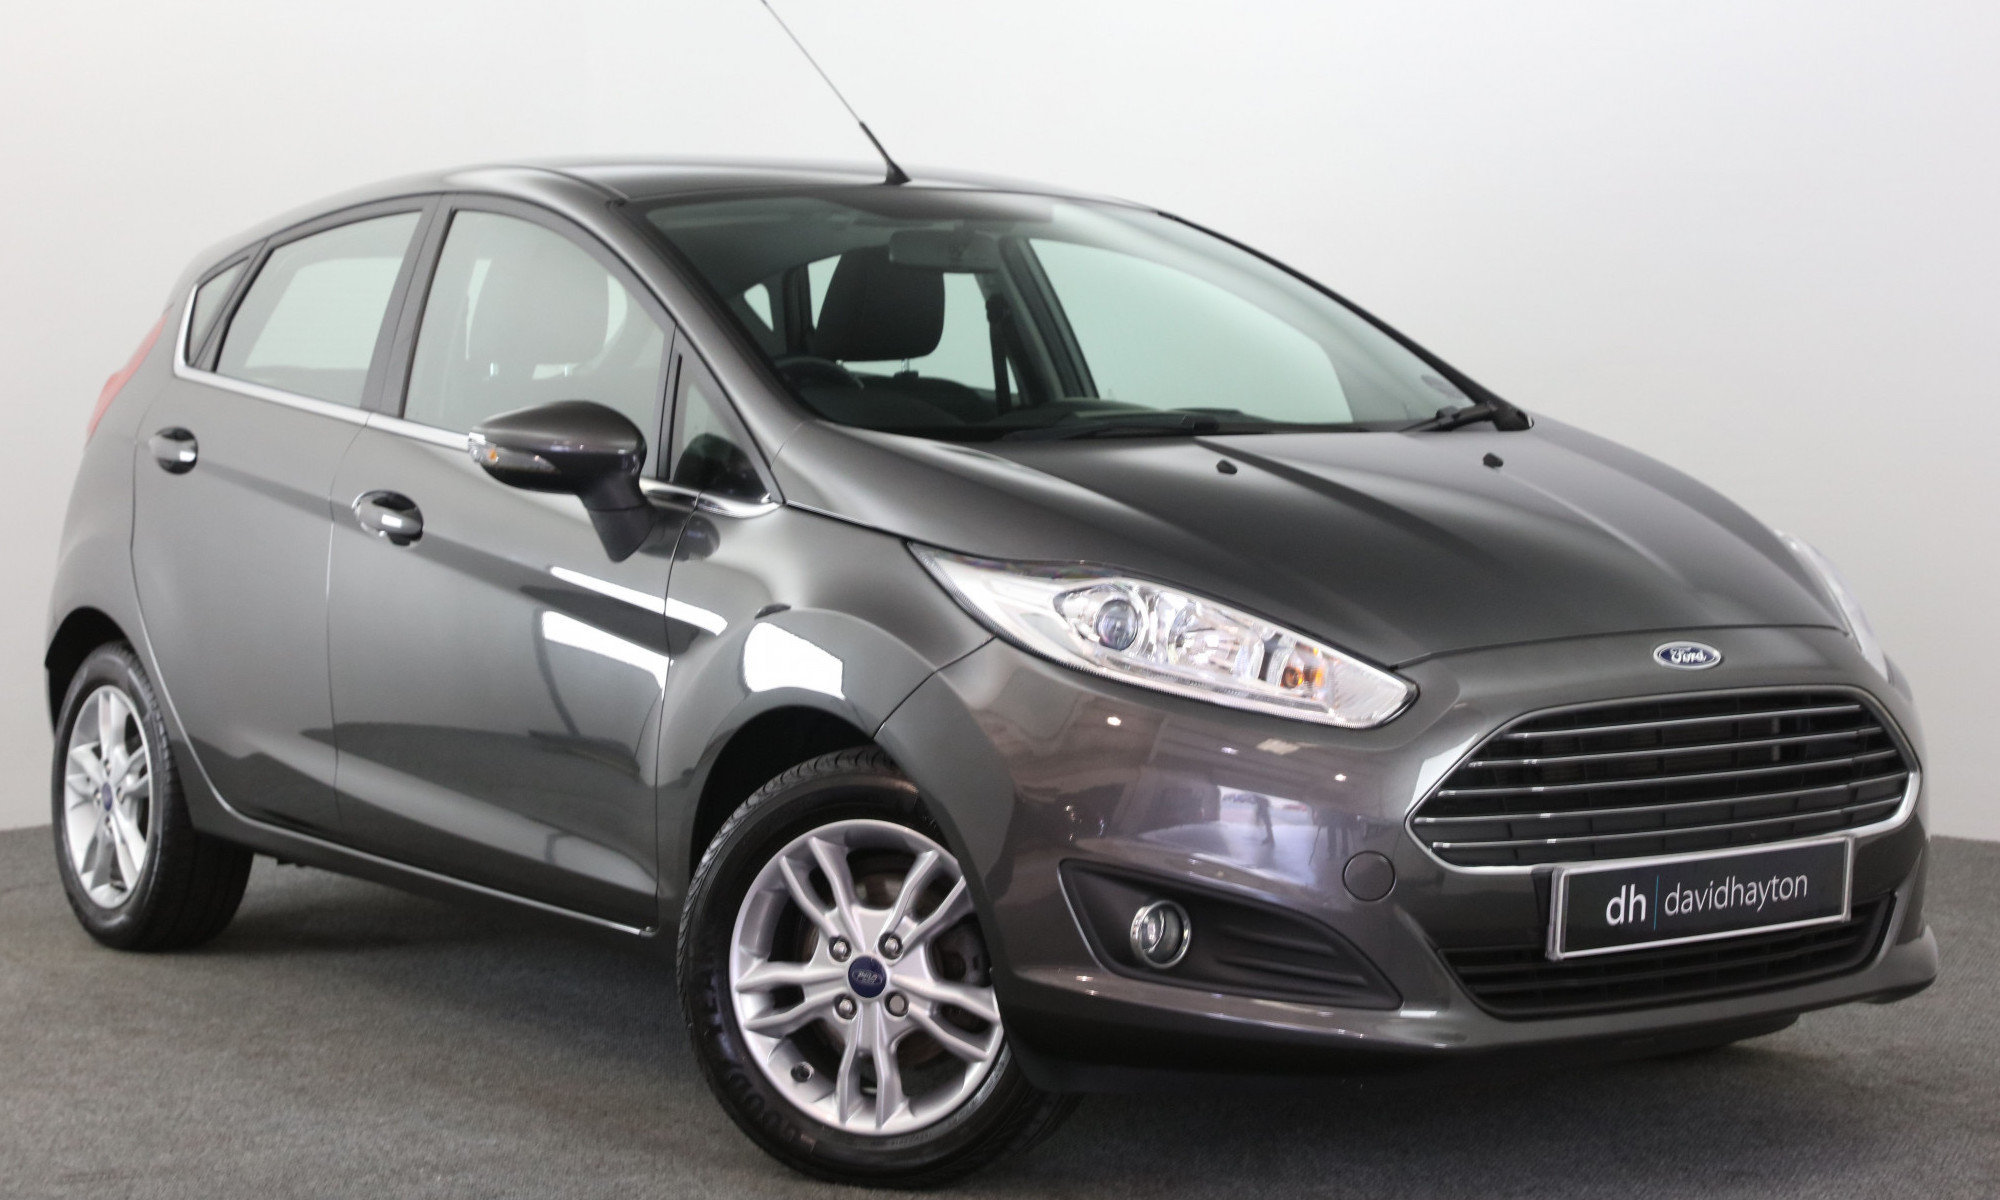 Grey Ford Fiesta facing 3/4 right